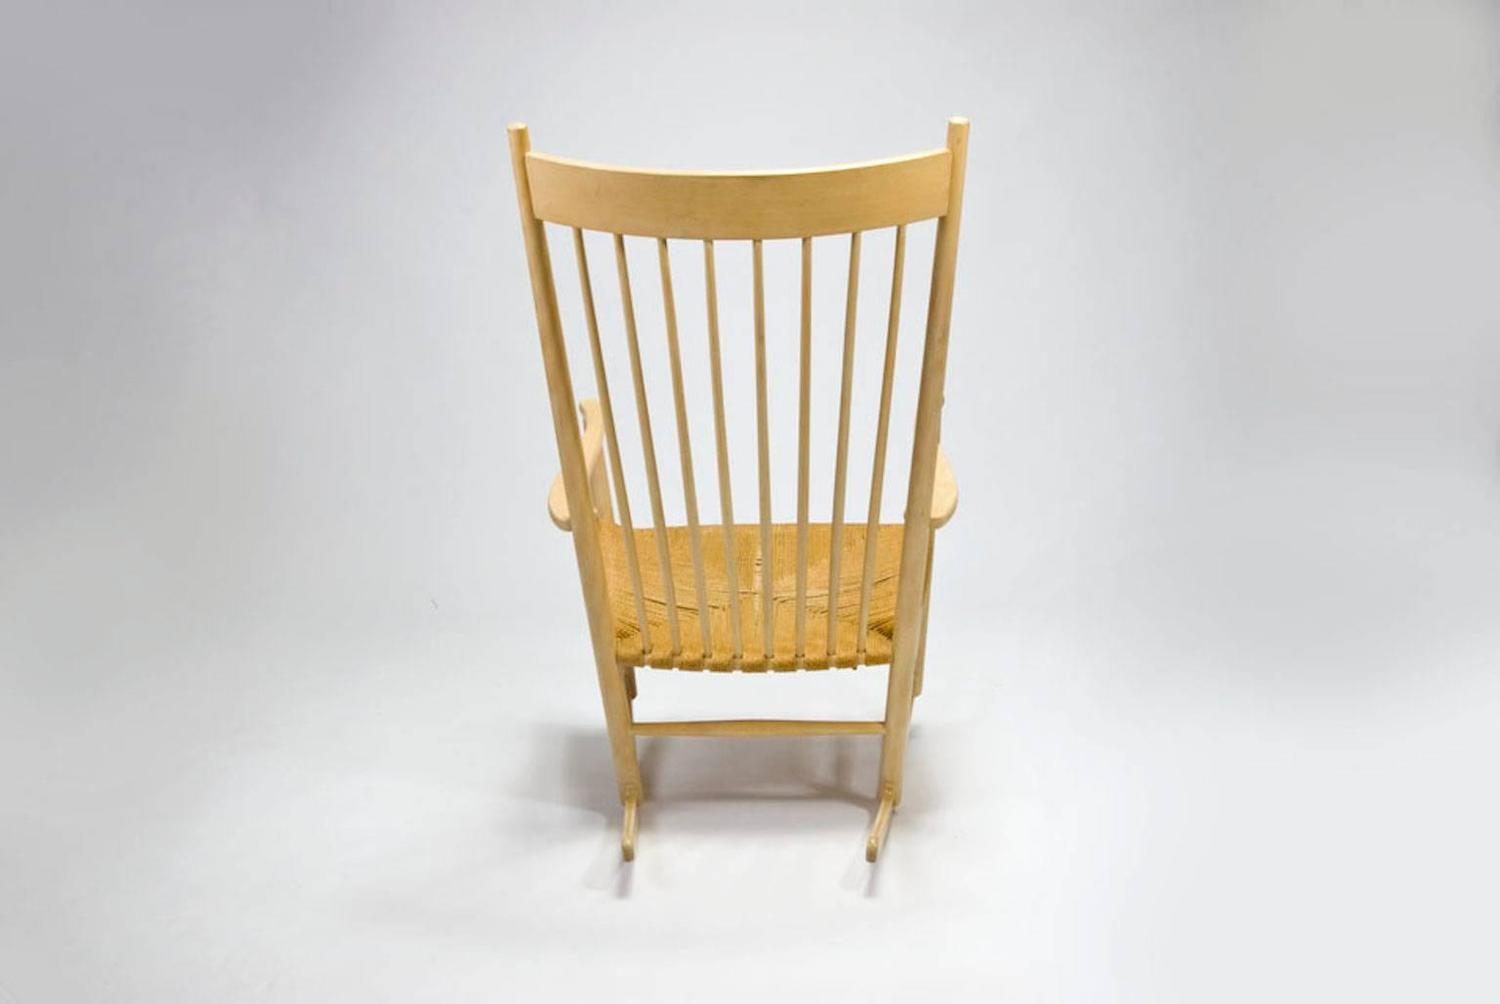 Vintage Danish Modern Rocking Chair By Hans J. Wegner At 1stdibs. Full resolution‎  portraiture, nominally Width 1500 Height 1004 pixels, portraiture with #AC7A20.